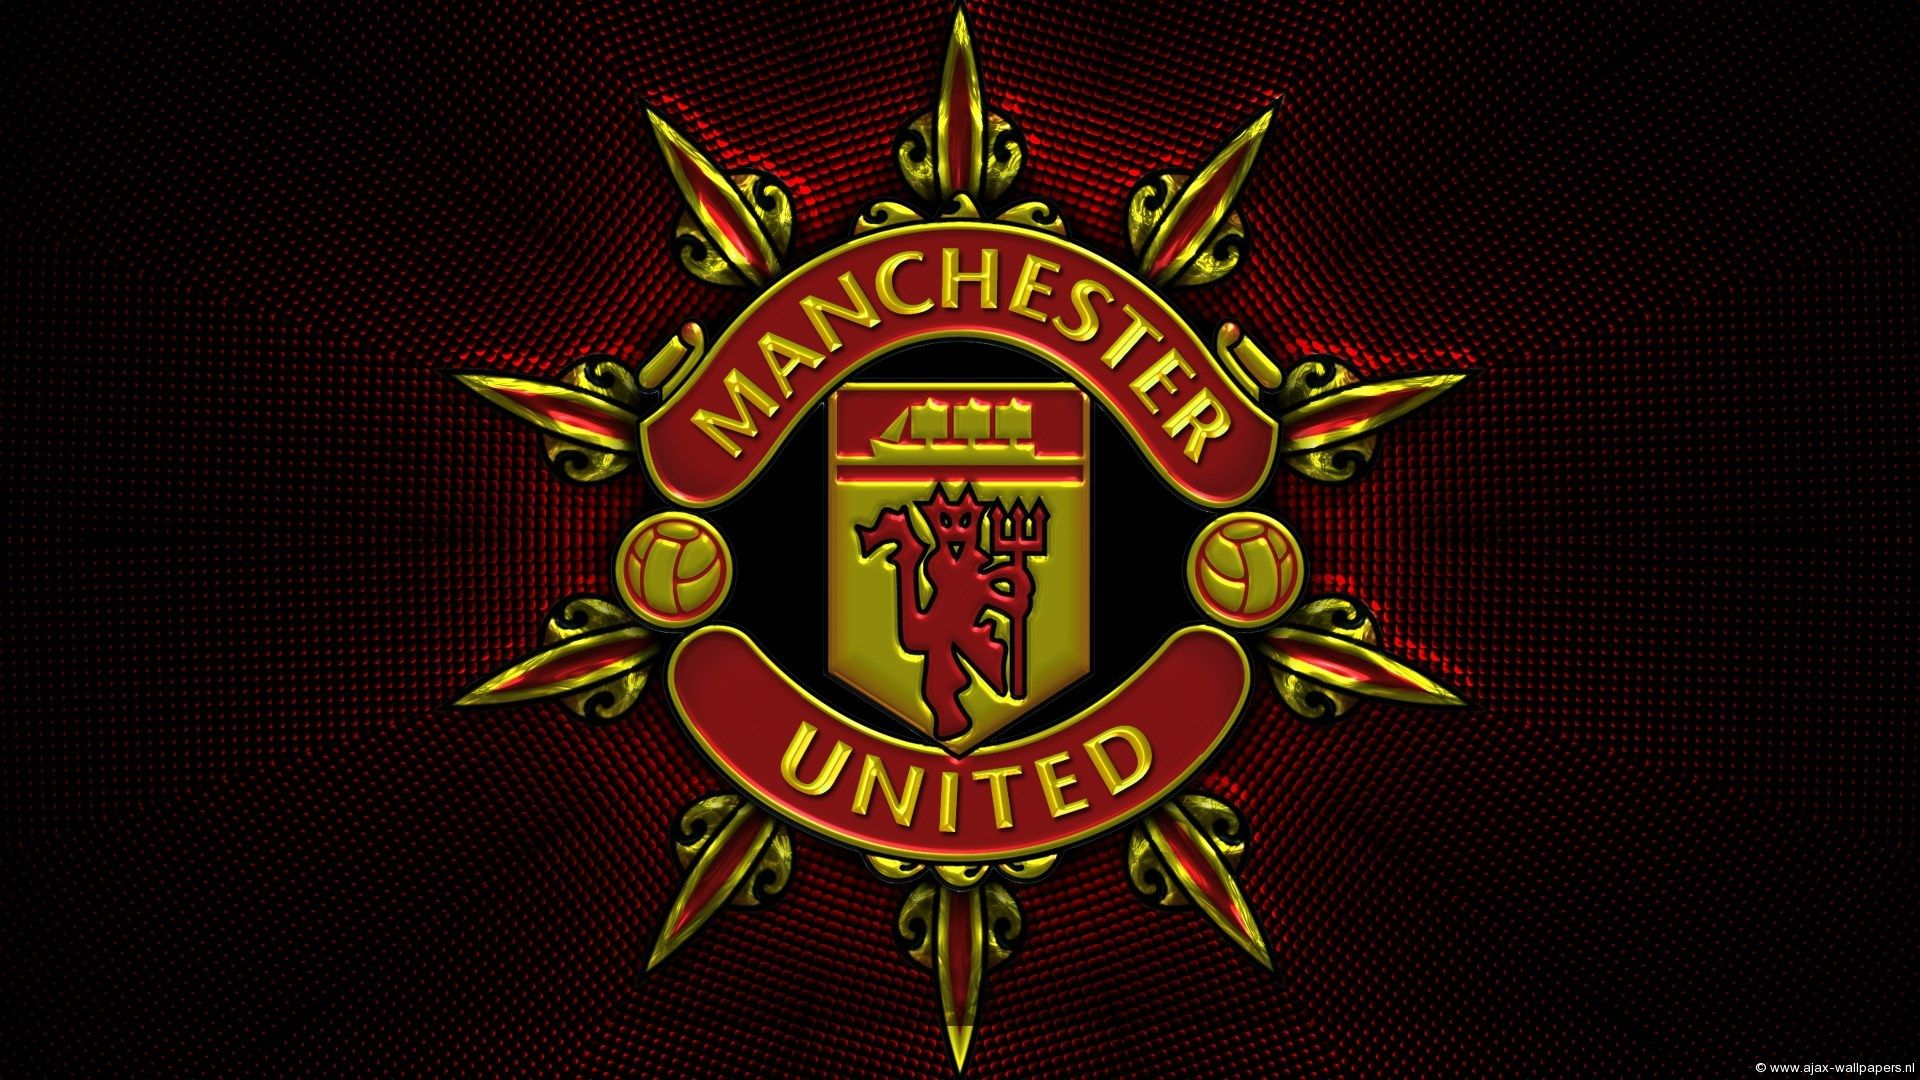 List of Latest Manchester United Wallpapers Computer manchester united computer wallpaper